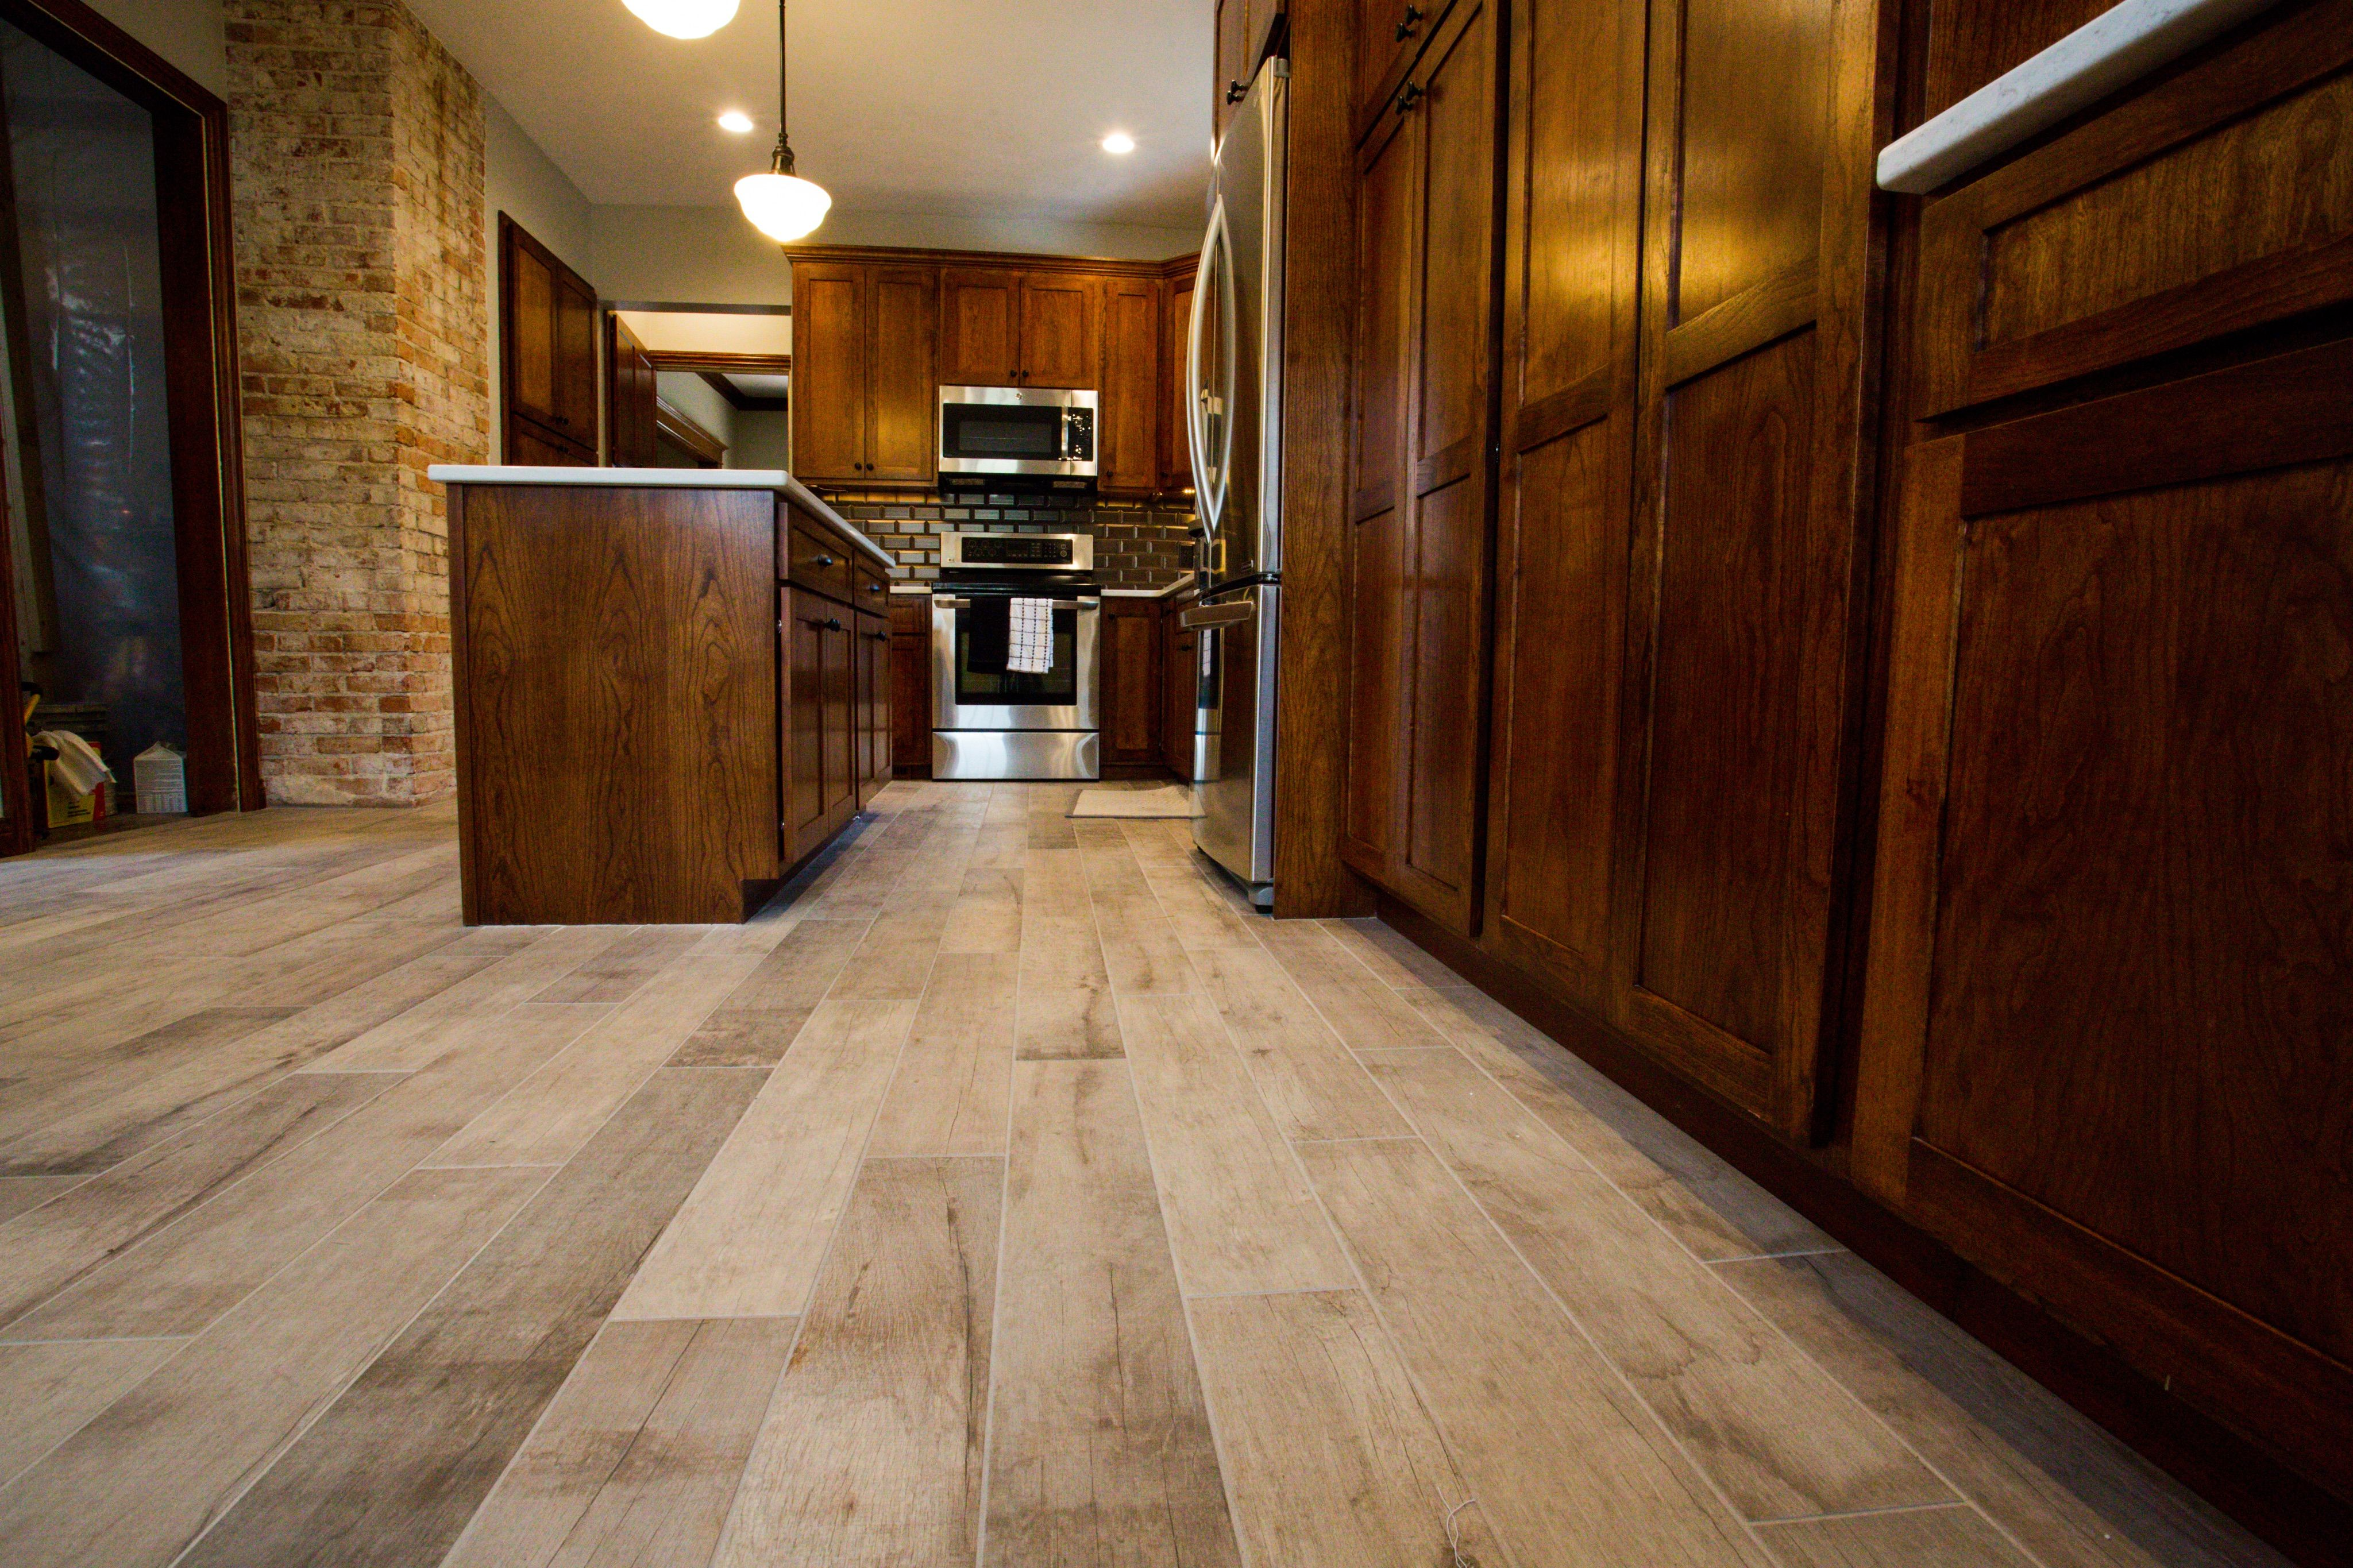 Wood Look Tile And Dark Cherry Cabinets Hardwood Floors In Kitchen Cherry Wood Cabinets Wood Look Tile Floor